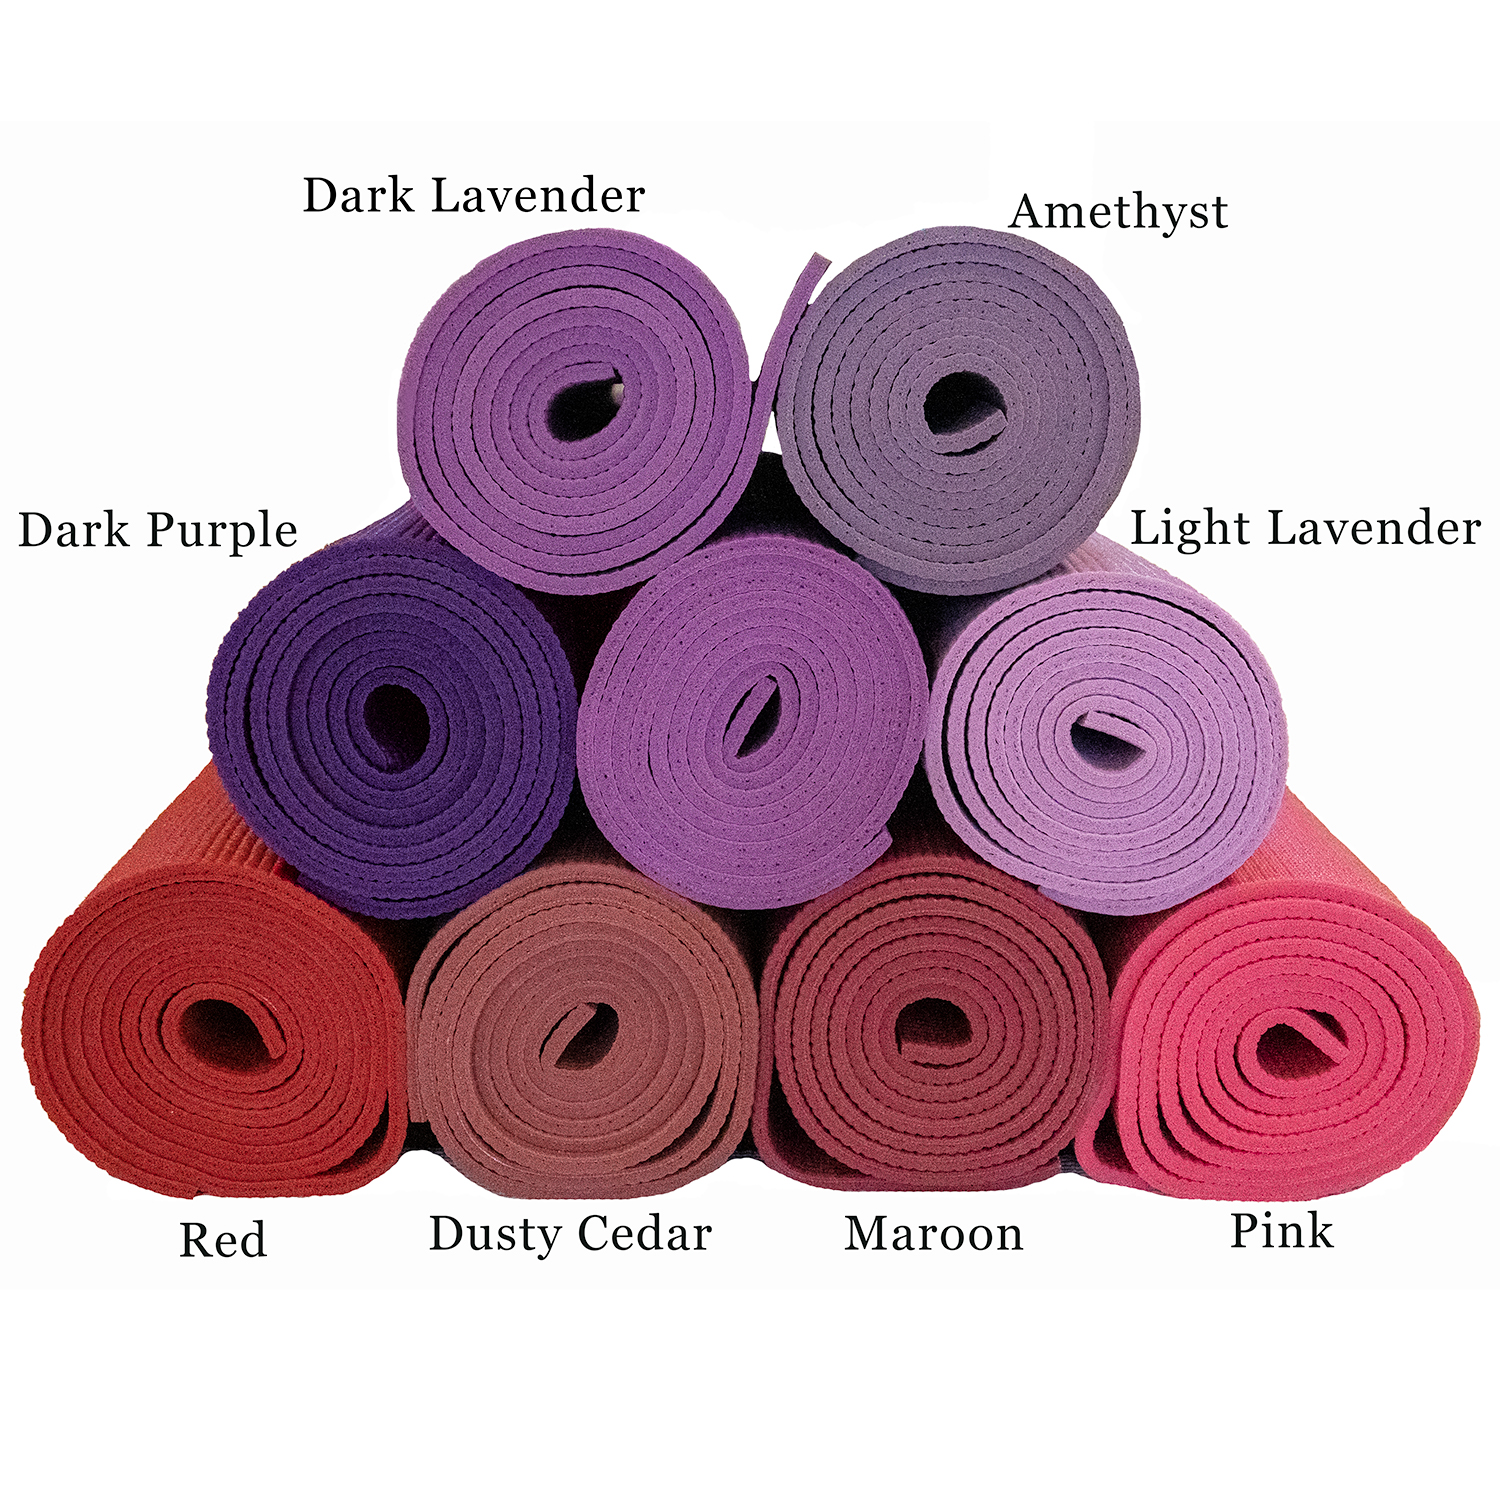 1 4 Inch Yoga Mat 24 X 72 Yoga Direct